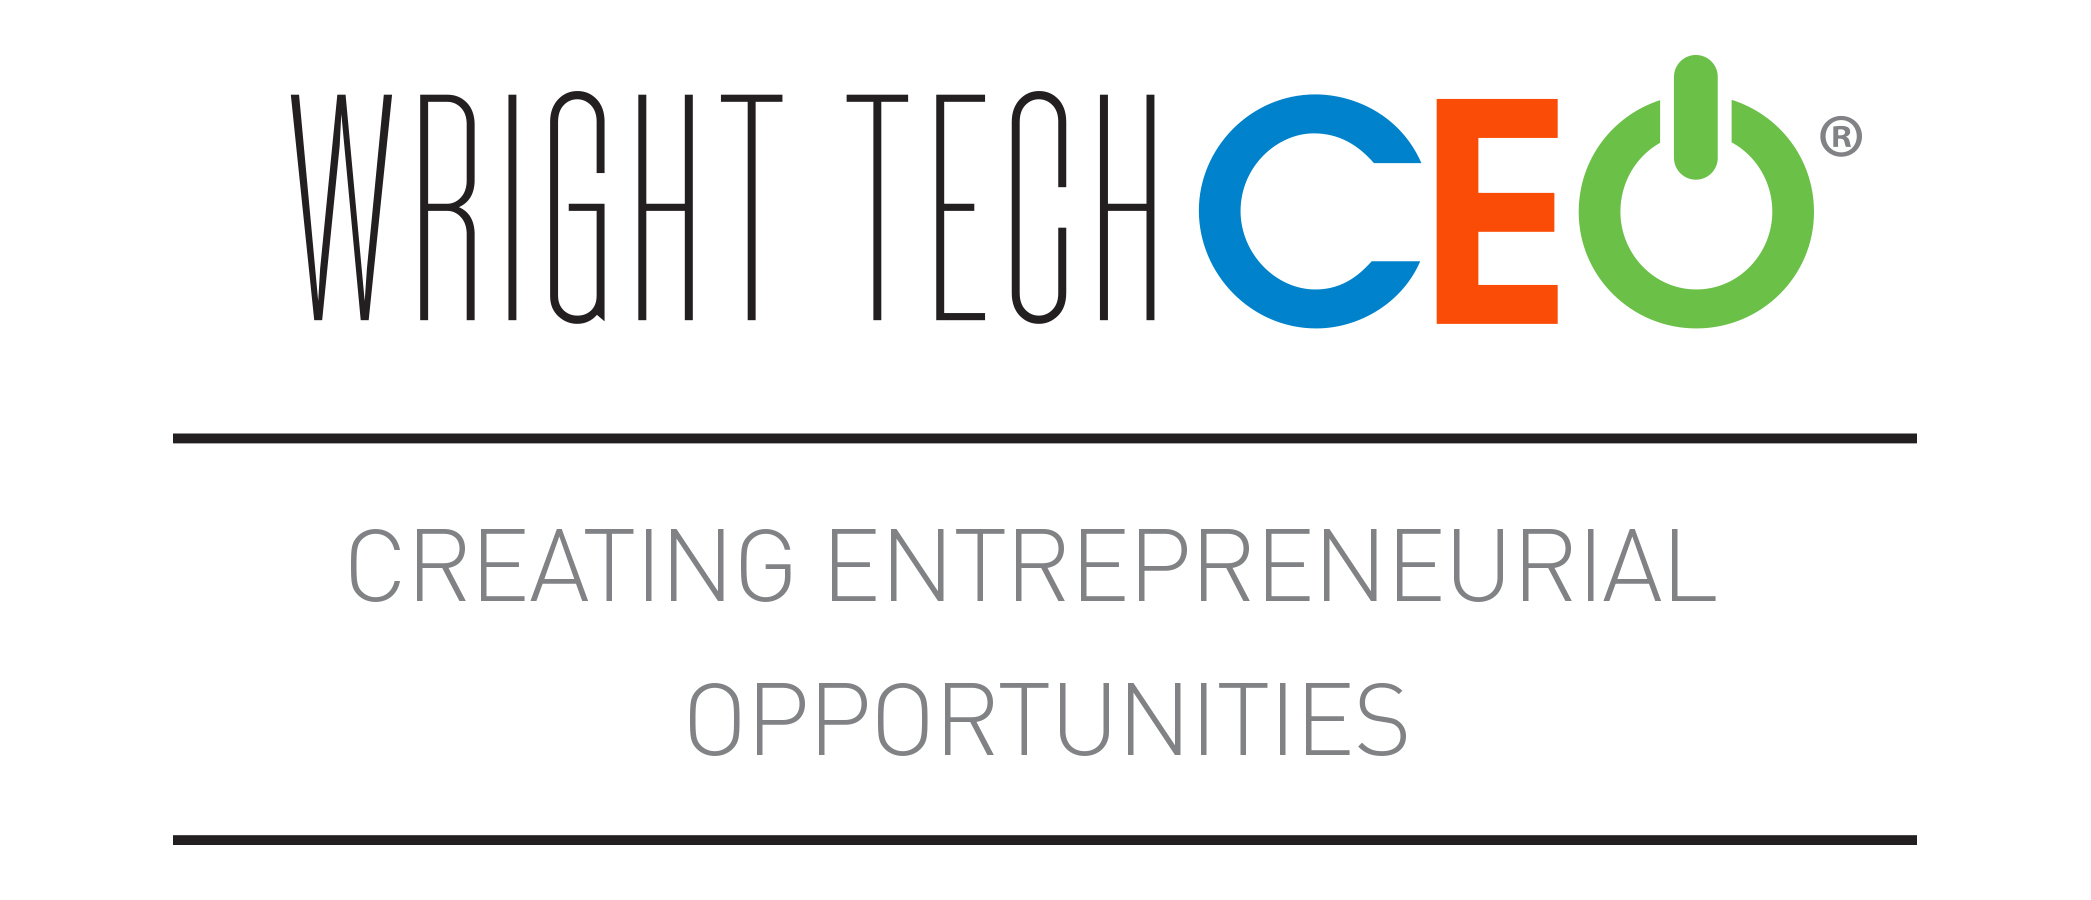 ceo logo - wright tech (2)